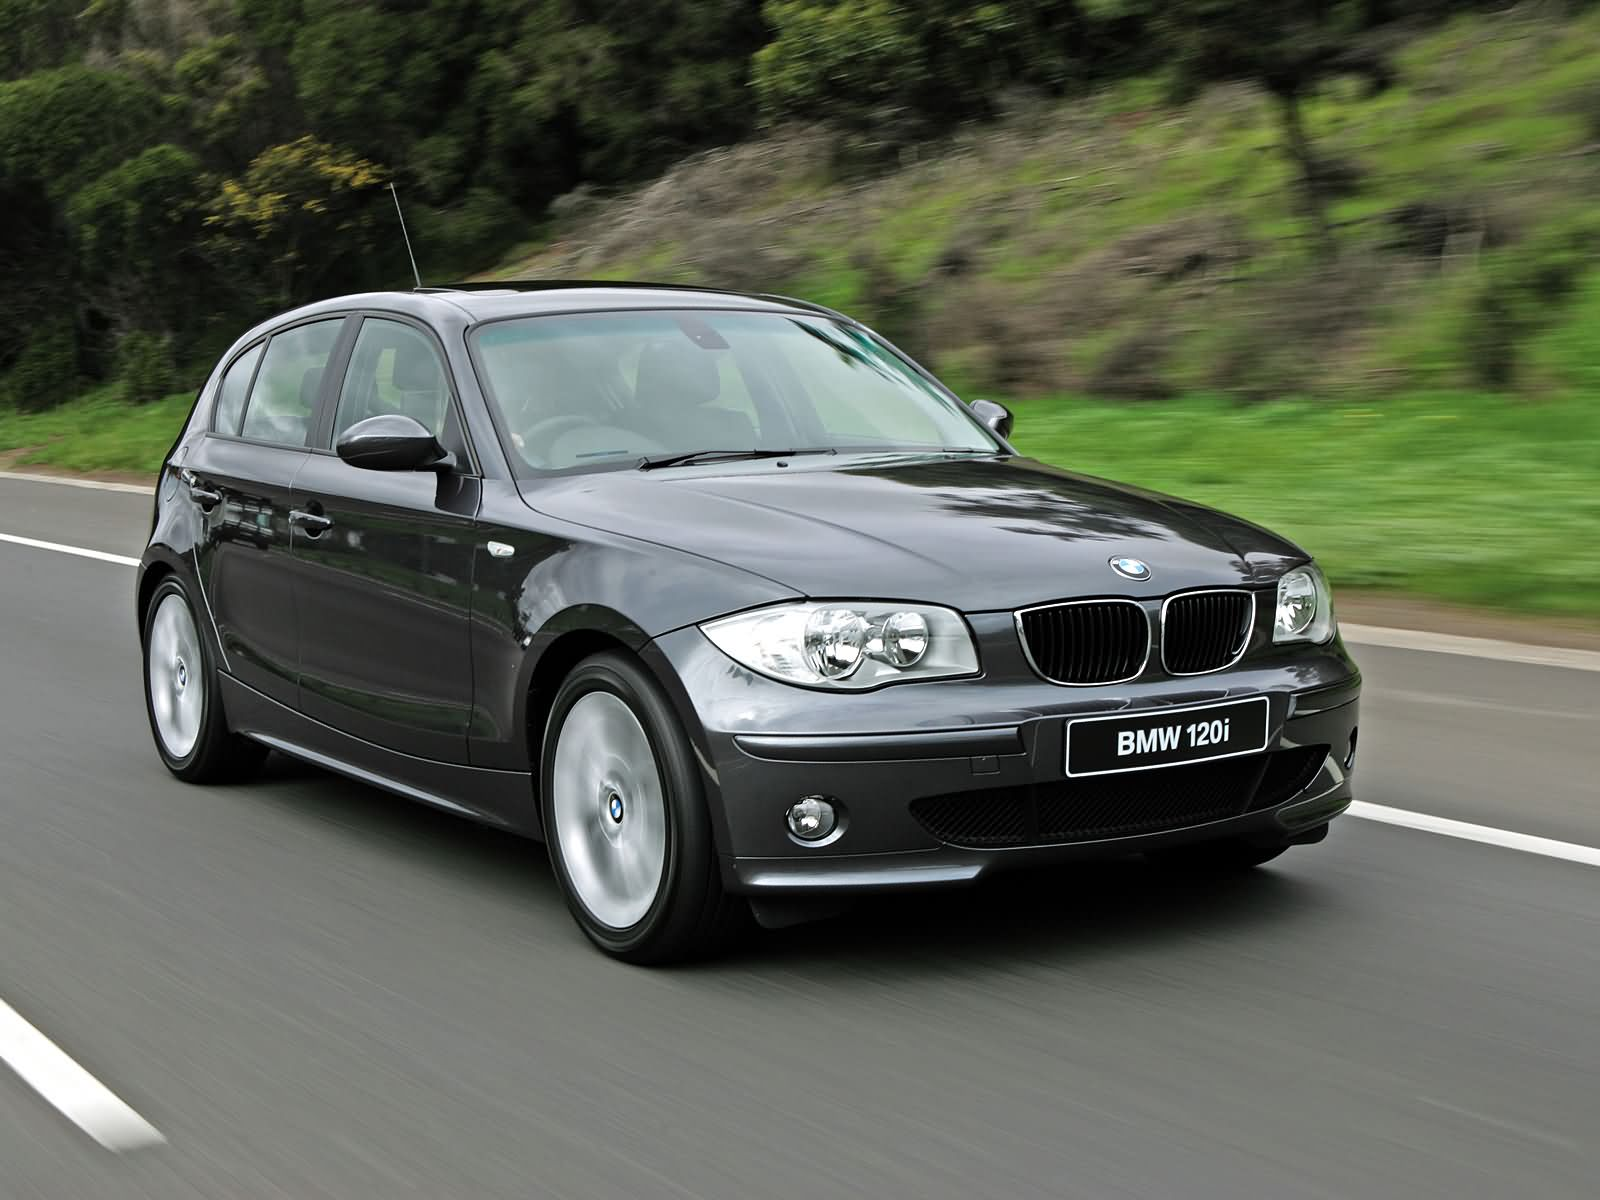 Bmw 120i 2008 Review Amazing Pictures And Images Look